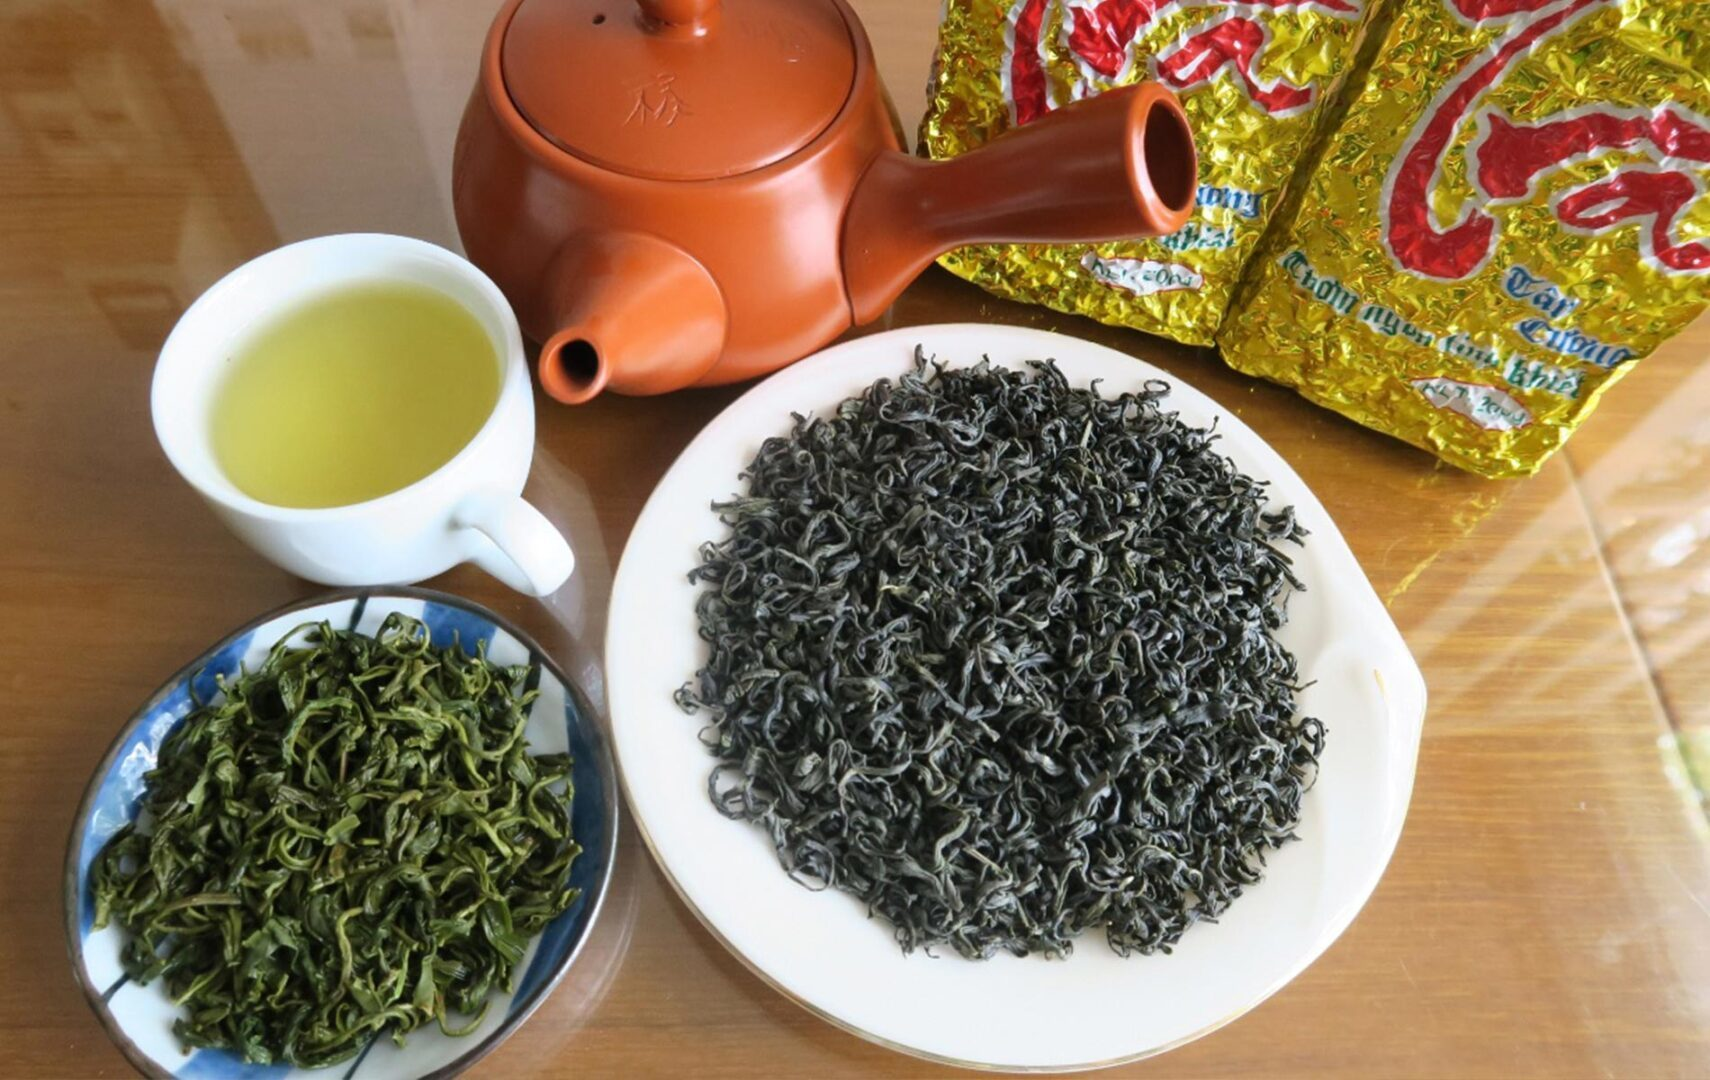 Green tea is the most popular tea type in Vietnam.